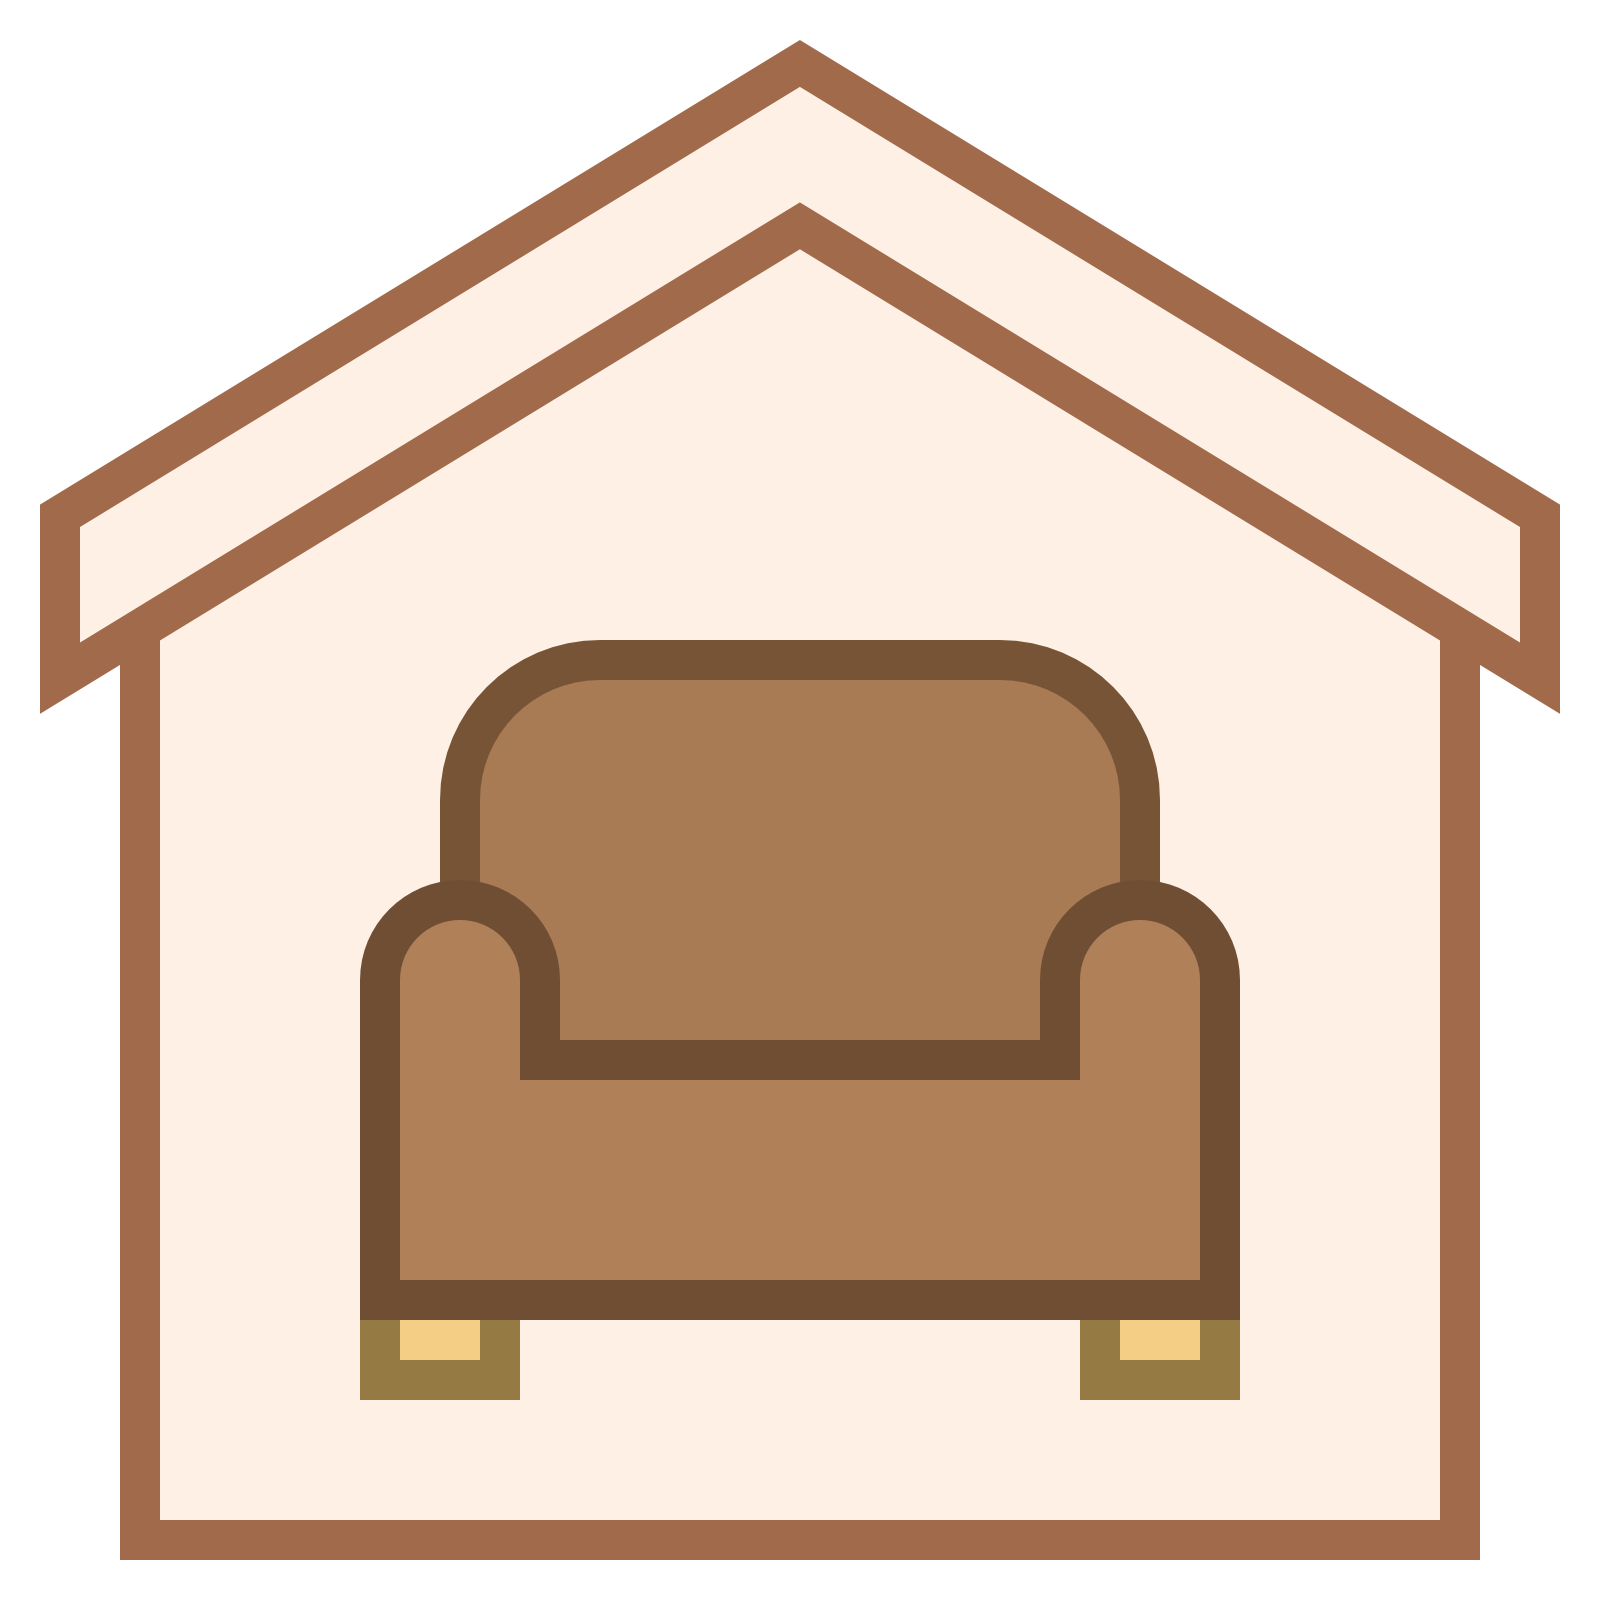 Indianbhoomi . Couch clipart house interior